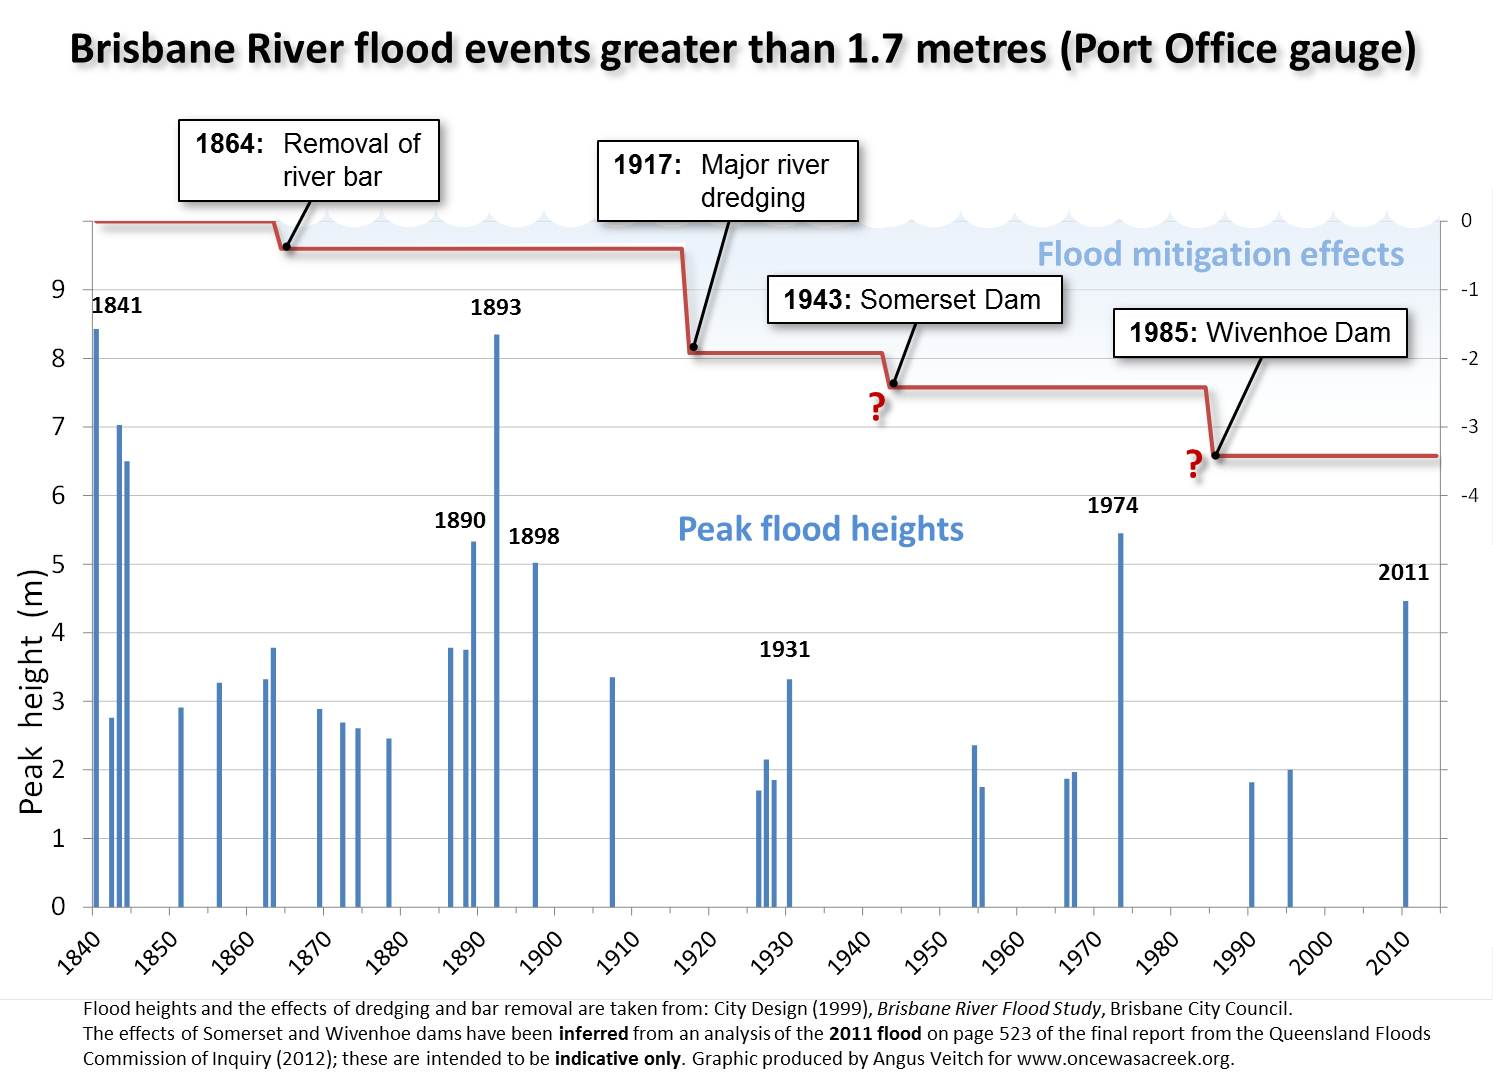 "Flood events greater than 1.7m in the Brisbane River since 1841. Also shown are the estimated mitigating impacts of river works and the two dams. All data are sourced from the <a href=""http://resources.news.com.au/files/2011/01/20/1225991/887259-110121-brisbane-flood-study-jun-1999.pdf"">Brisbane River Flood Study</a> except the effect of the two dams, which is indicative only and has been inferred from an analysis on page 523 of the <a href=""http://www.floodcommission.qld.gov.au/publications/final-report"">final report</a> of the Flood Commission of Inquiry."